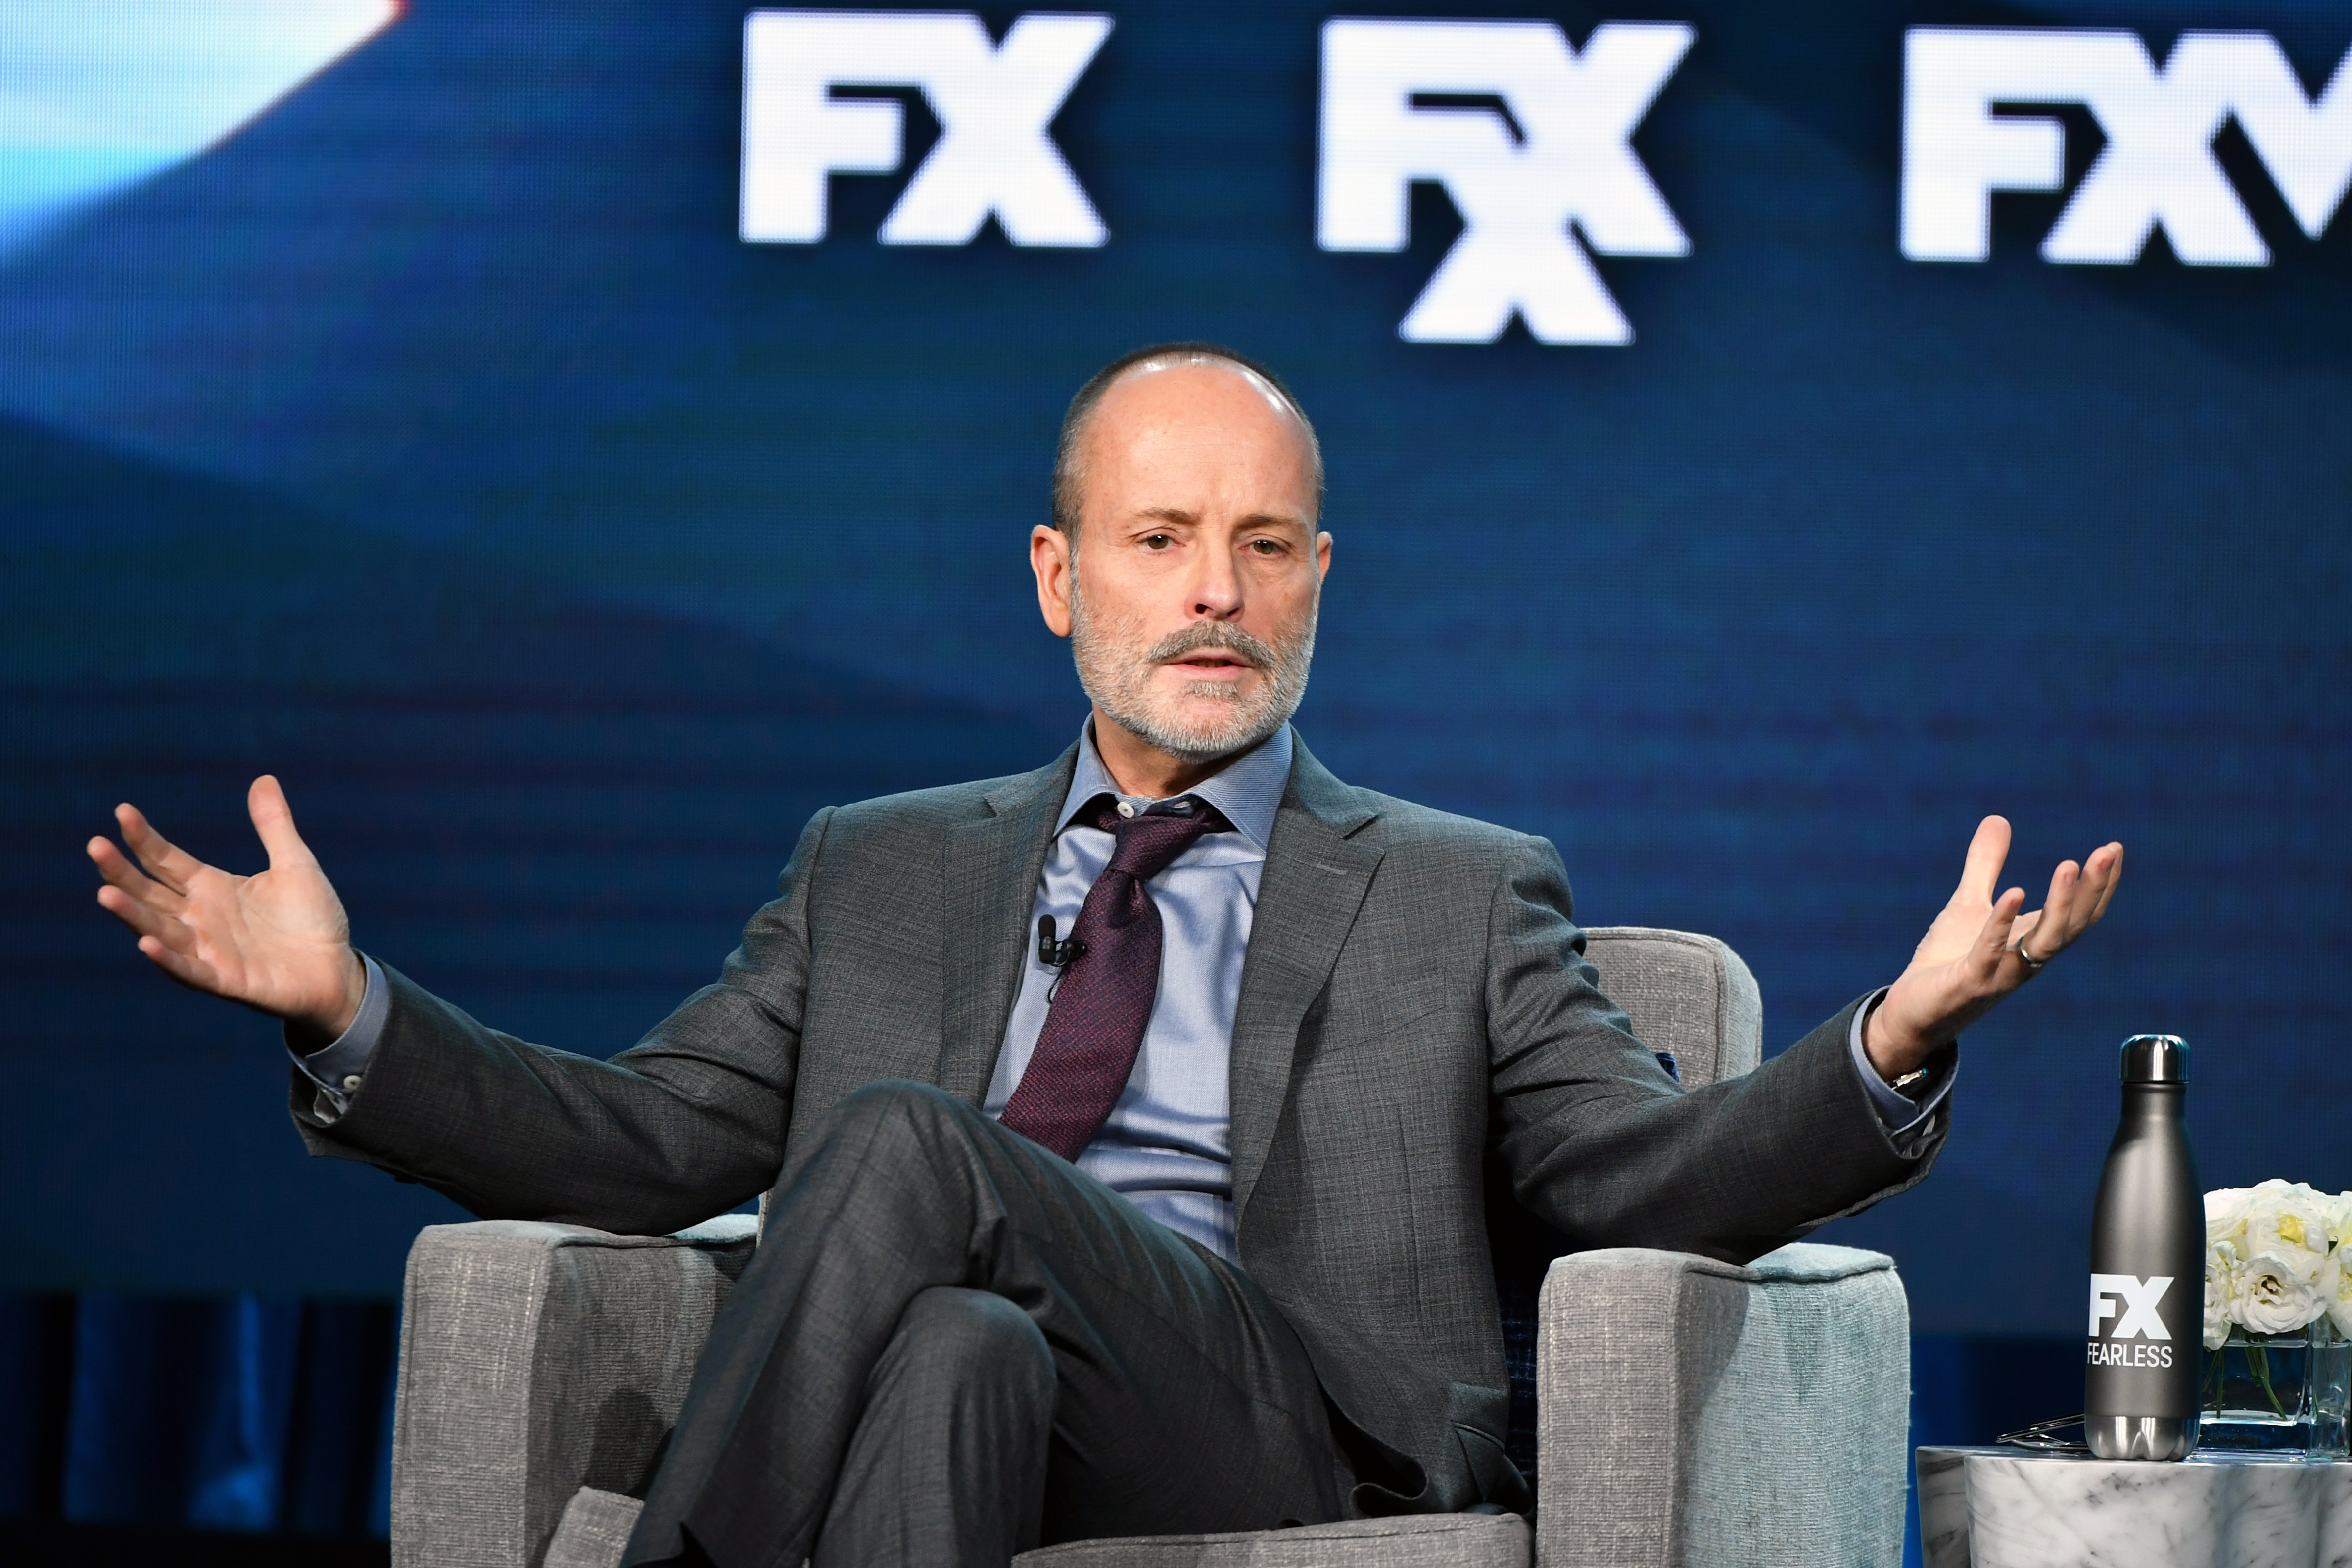 FX Refuses to Be Netflix, But It Can't Be Just Cable Either